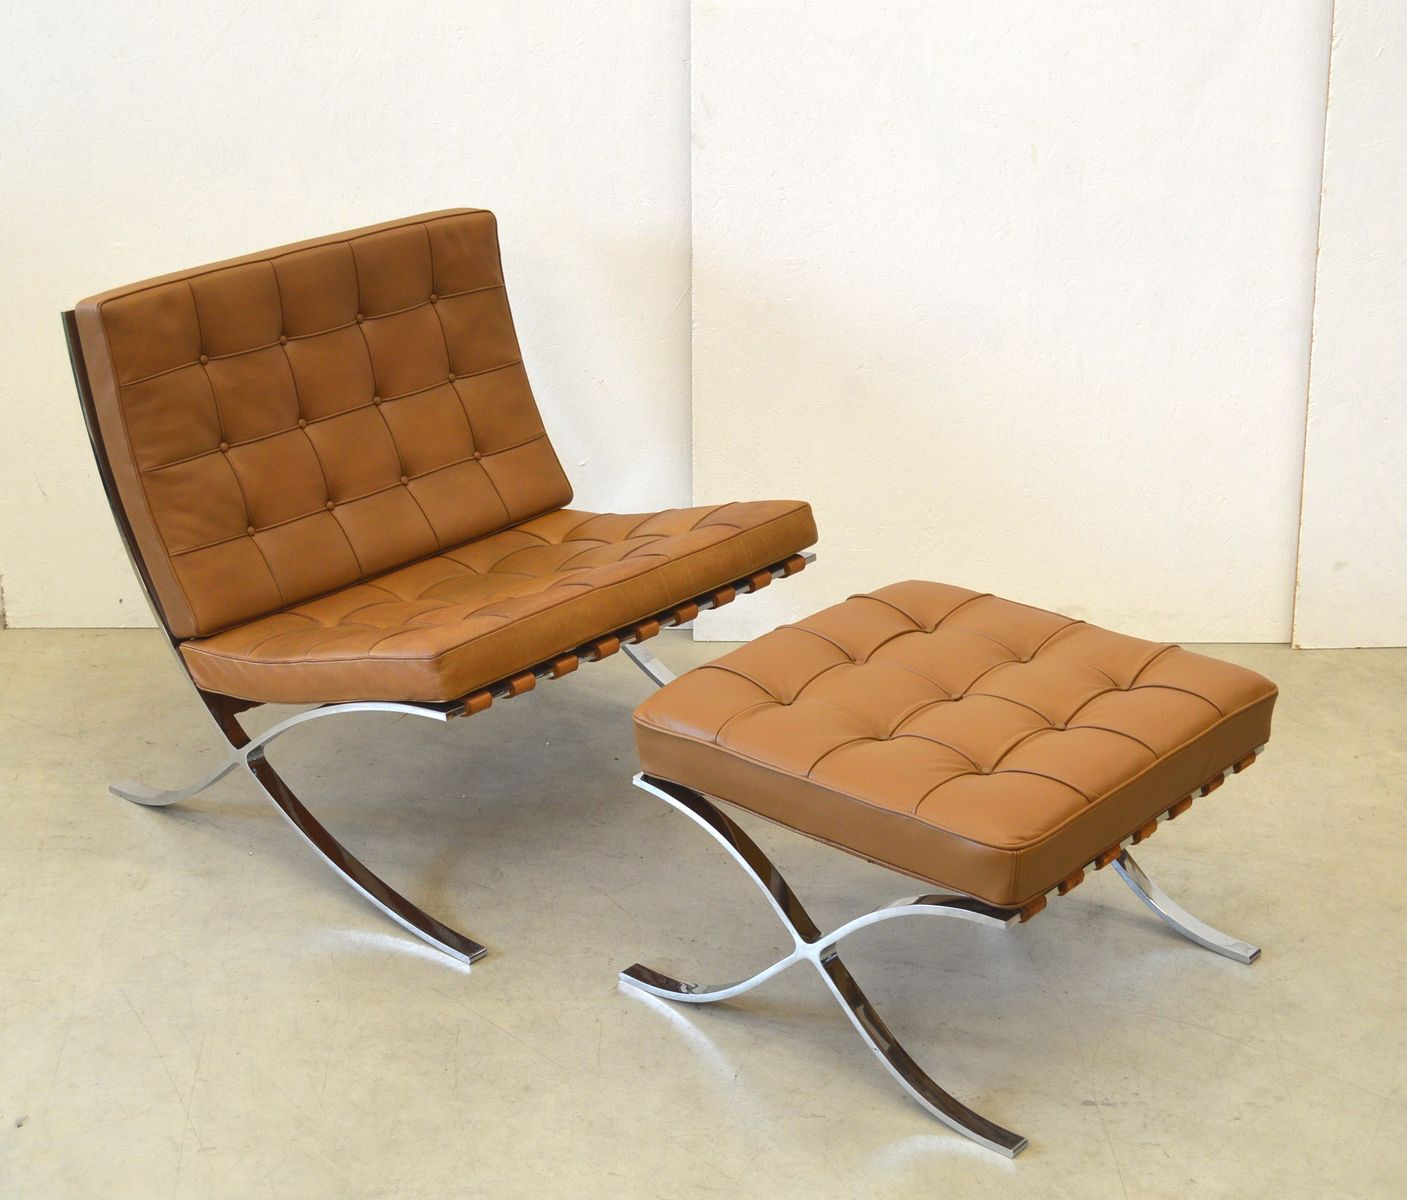 vintage barcelona chair ottoman by mies van der rohe for knoll international 1960s for sale. Black Bedroom Furniture Sets. Home Design Ideas